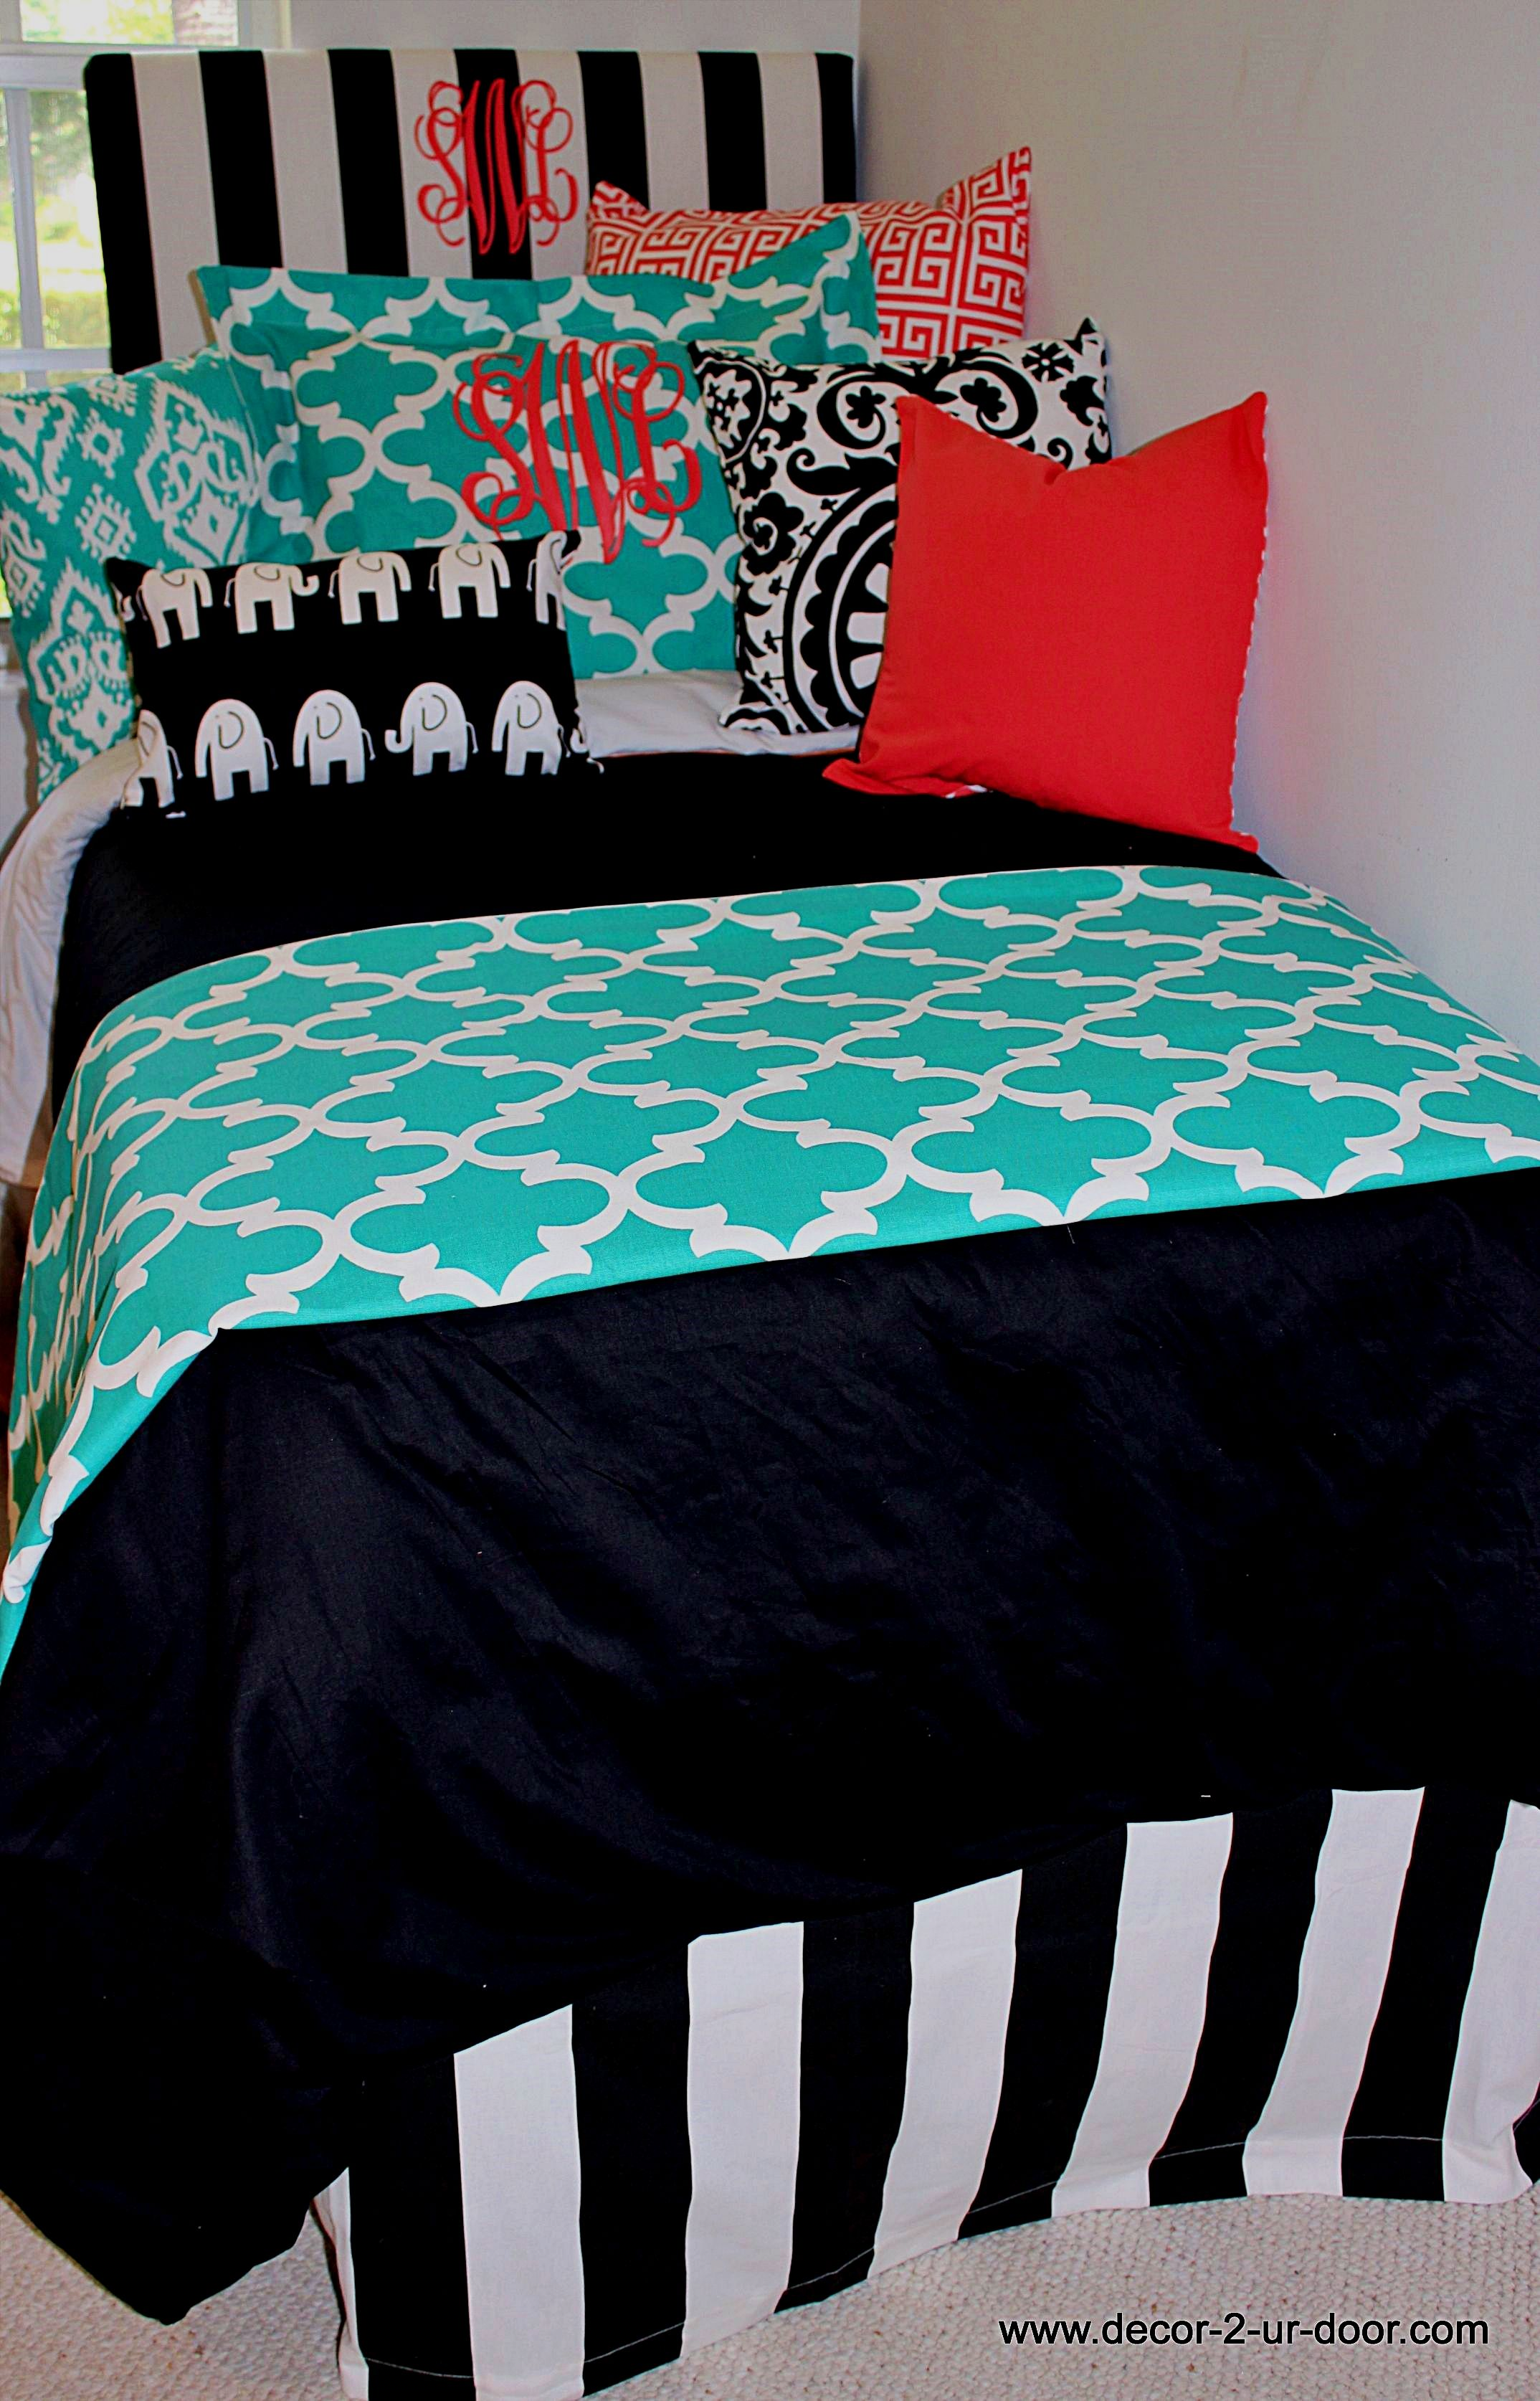 Design Your Own Dorm Room: Teenage Girl Room Decor Guide: Things That Objects On The